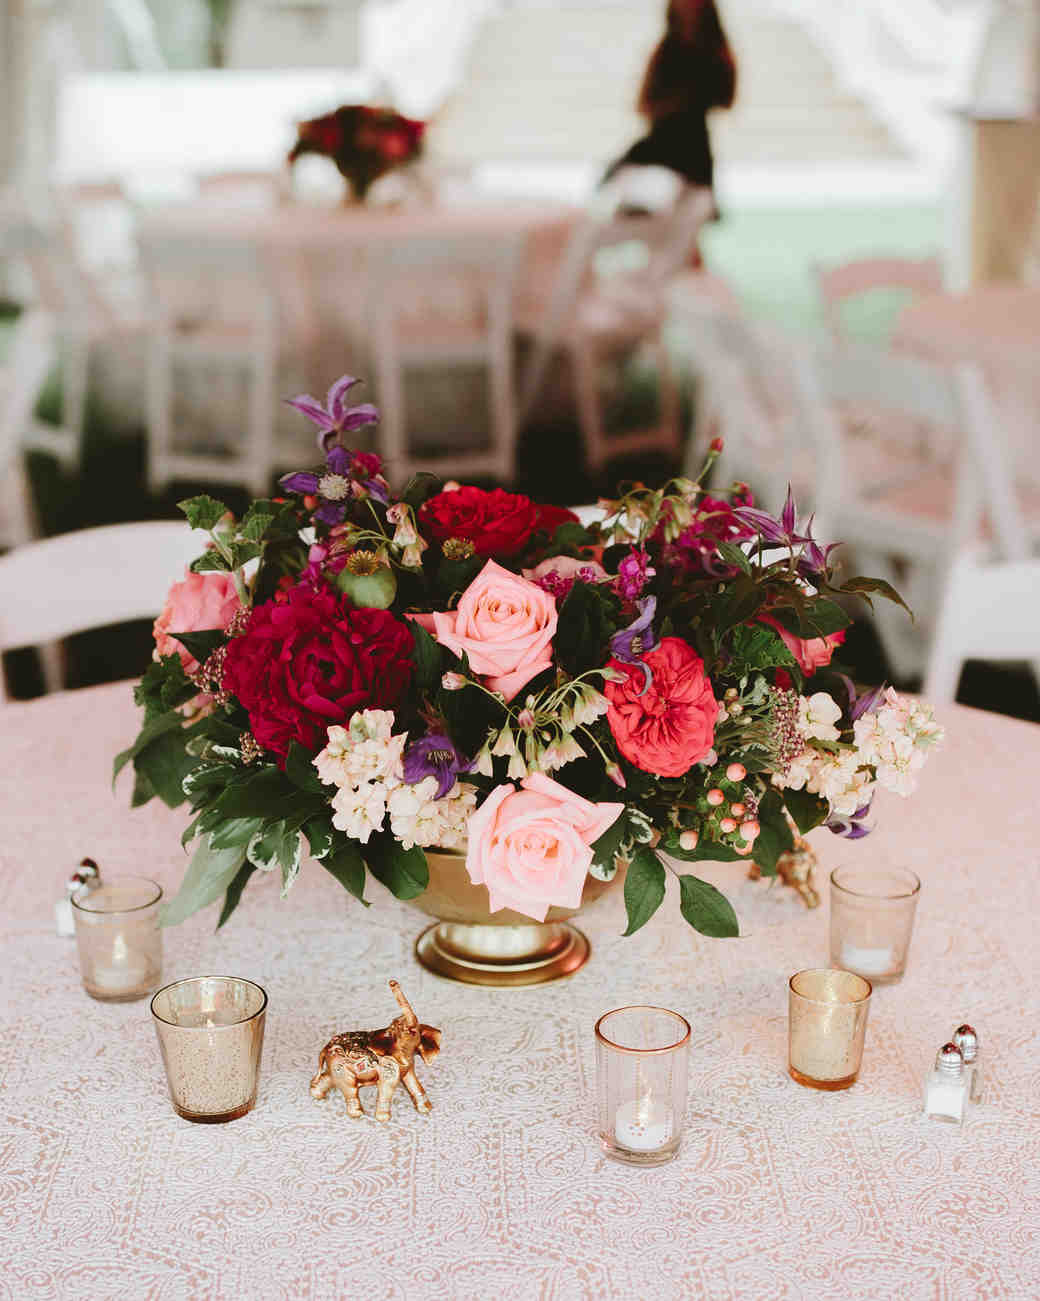 Jewel-Toned Wedding Centerpieces That Will Dazzle Your Guests ...